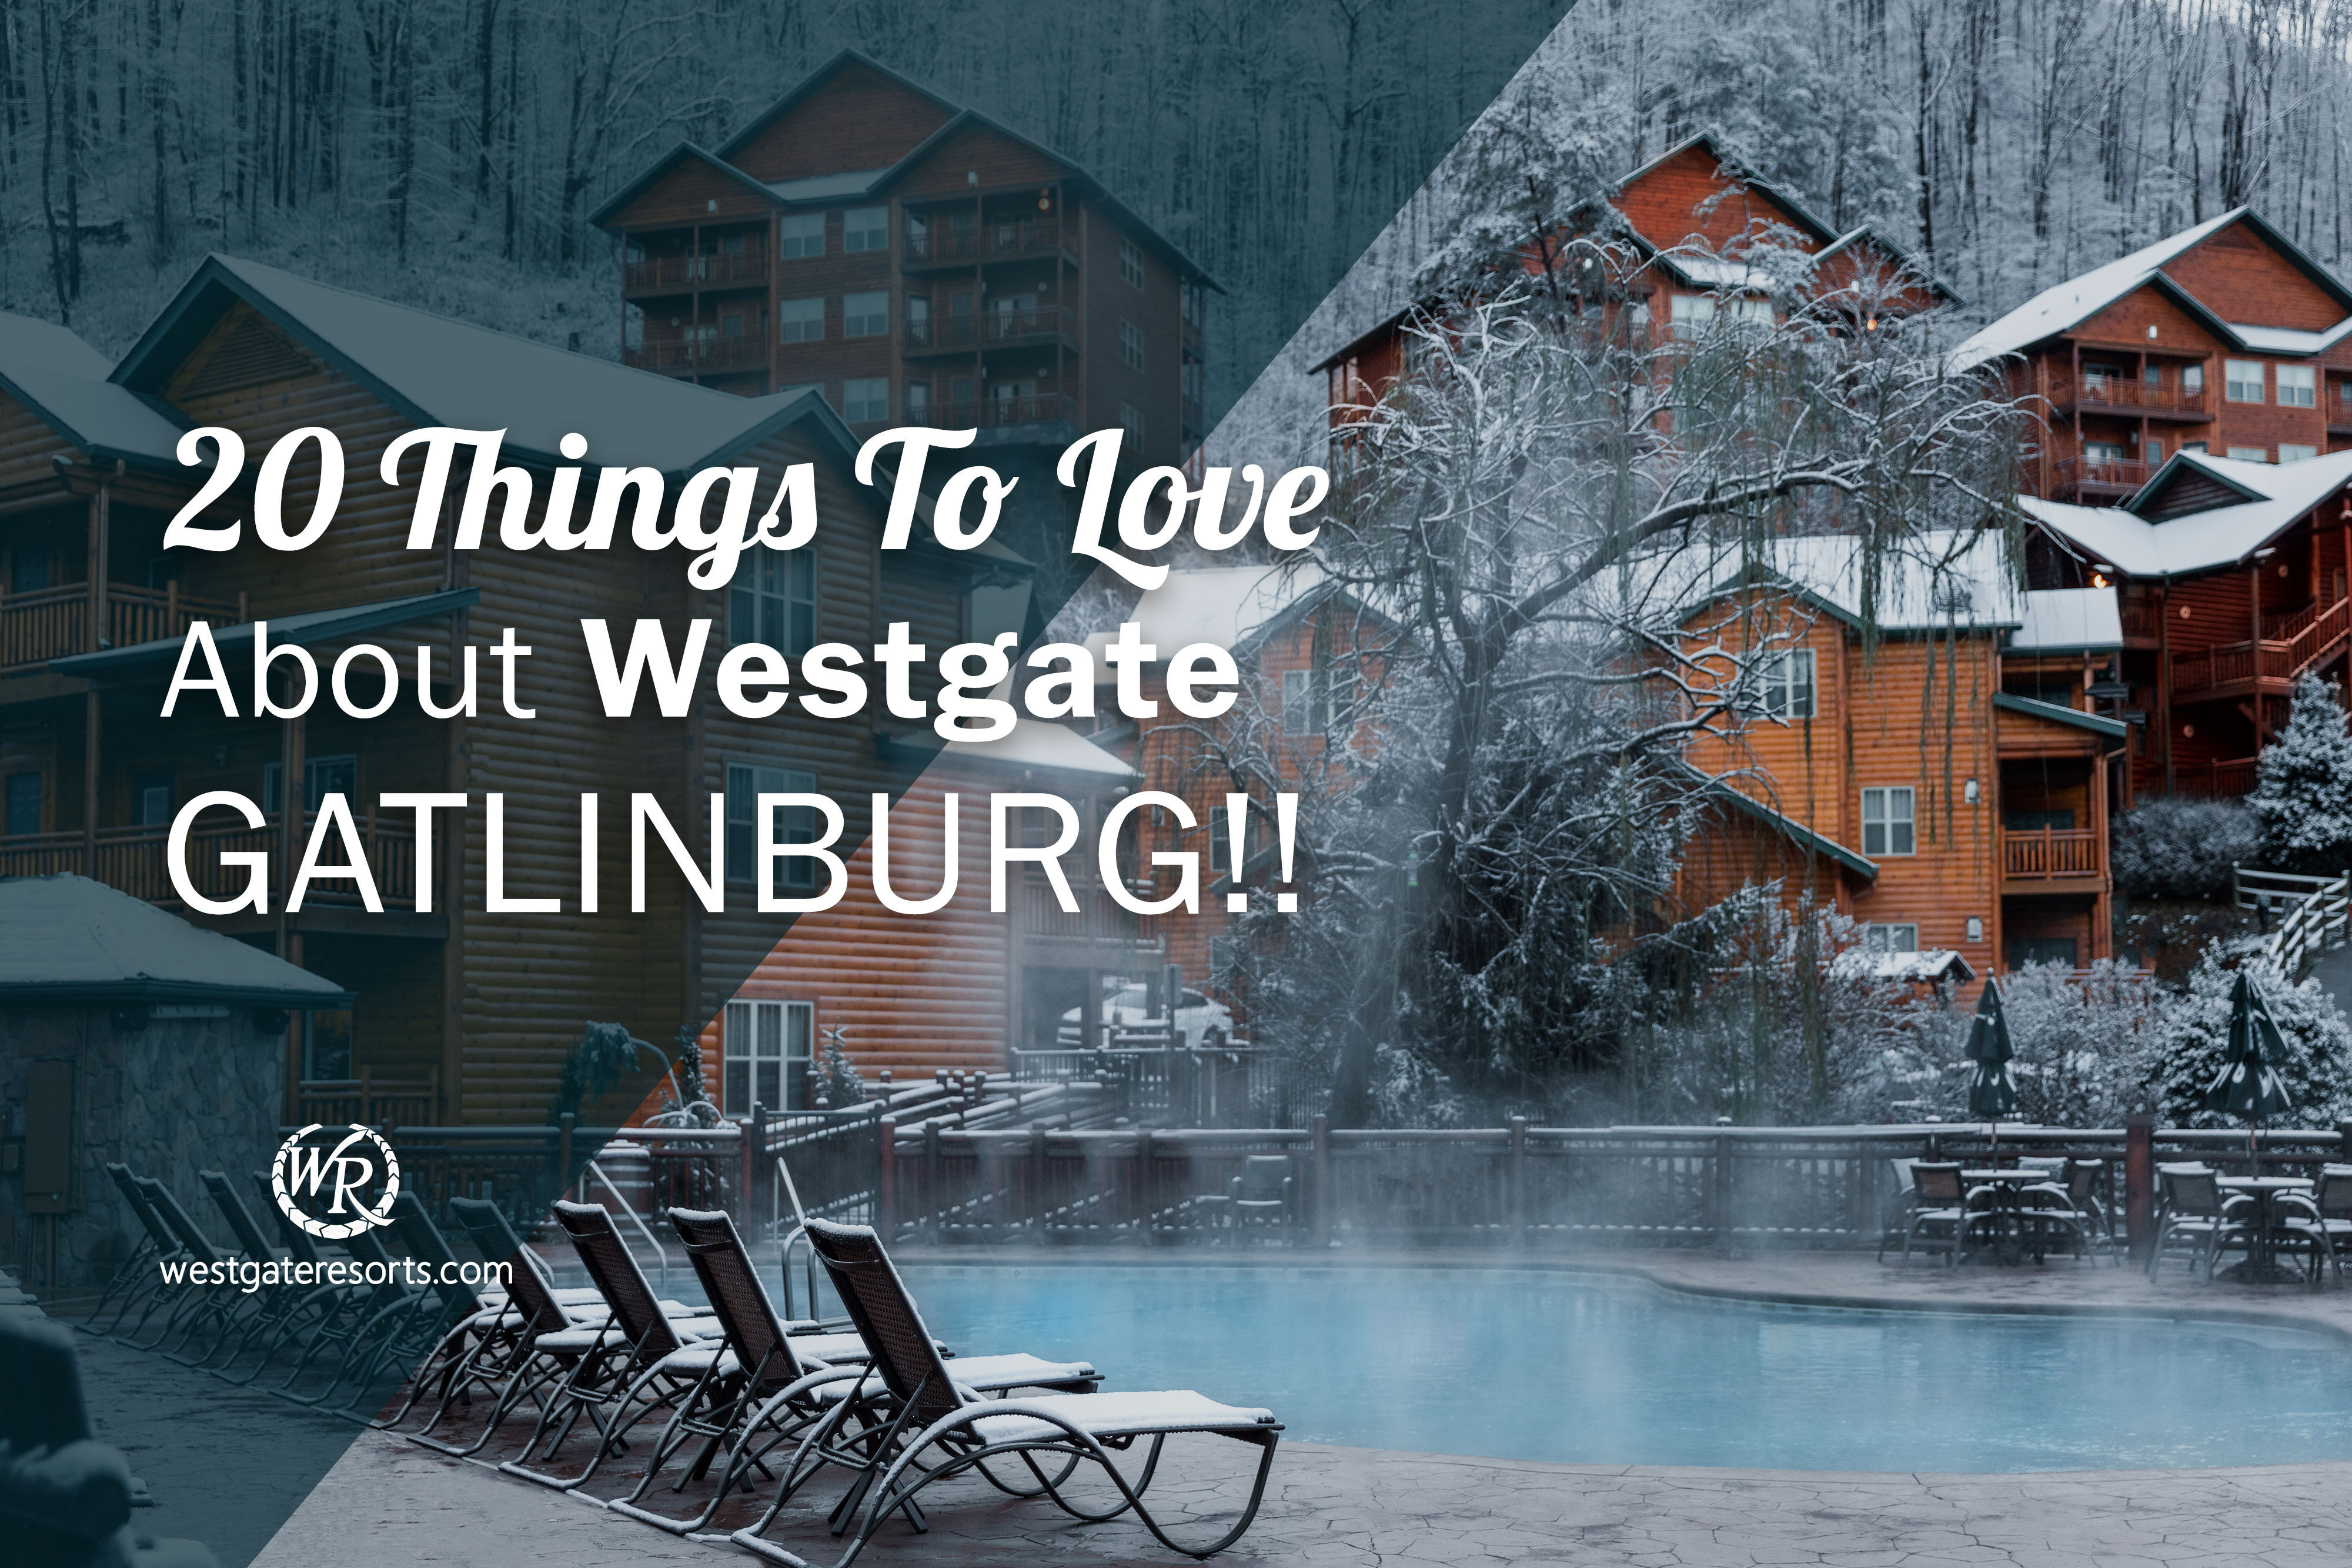 20 Things To Love About Westgate Gatlinburg!